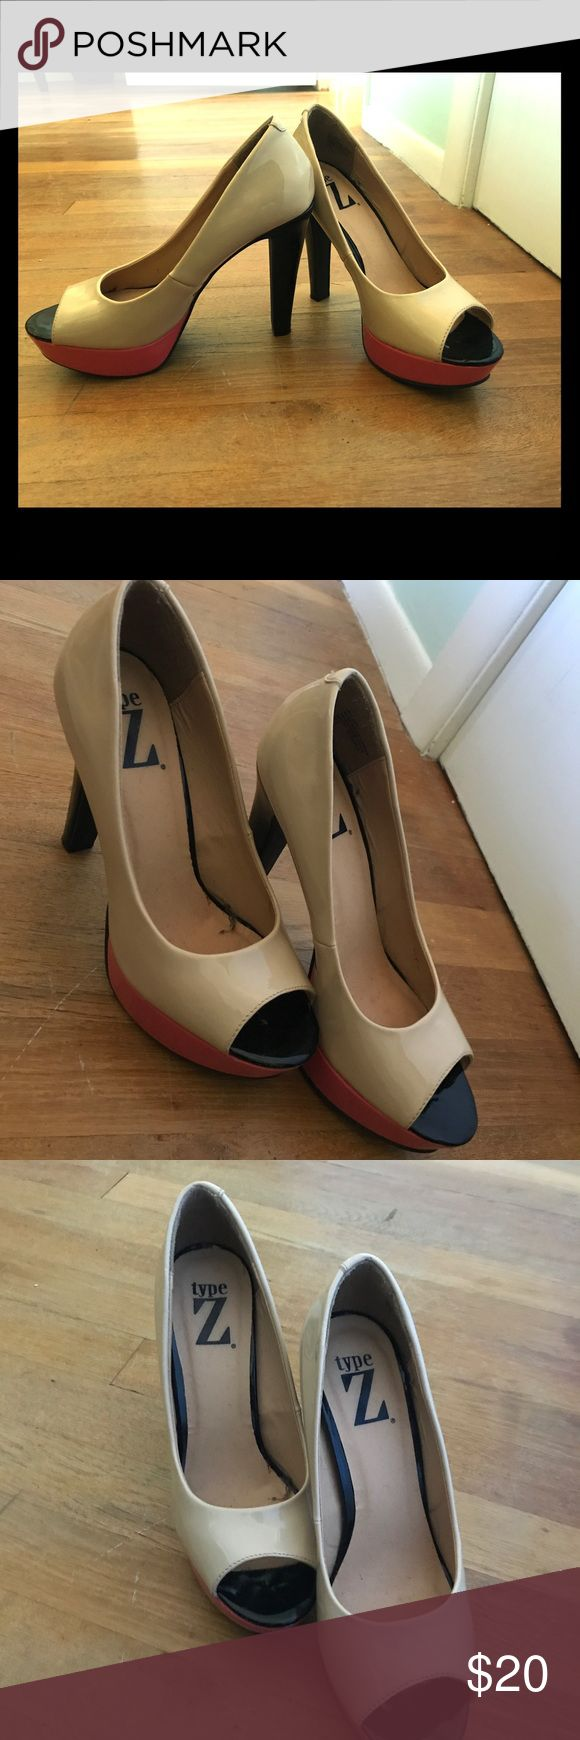 Color block pumps! Type Z color block peep toe pumps! These are great with a cream, black and salmon color block design. Heels are high at about 5-6 inches. Minimally worn. Type Z Shoes Heels